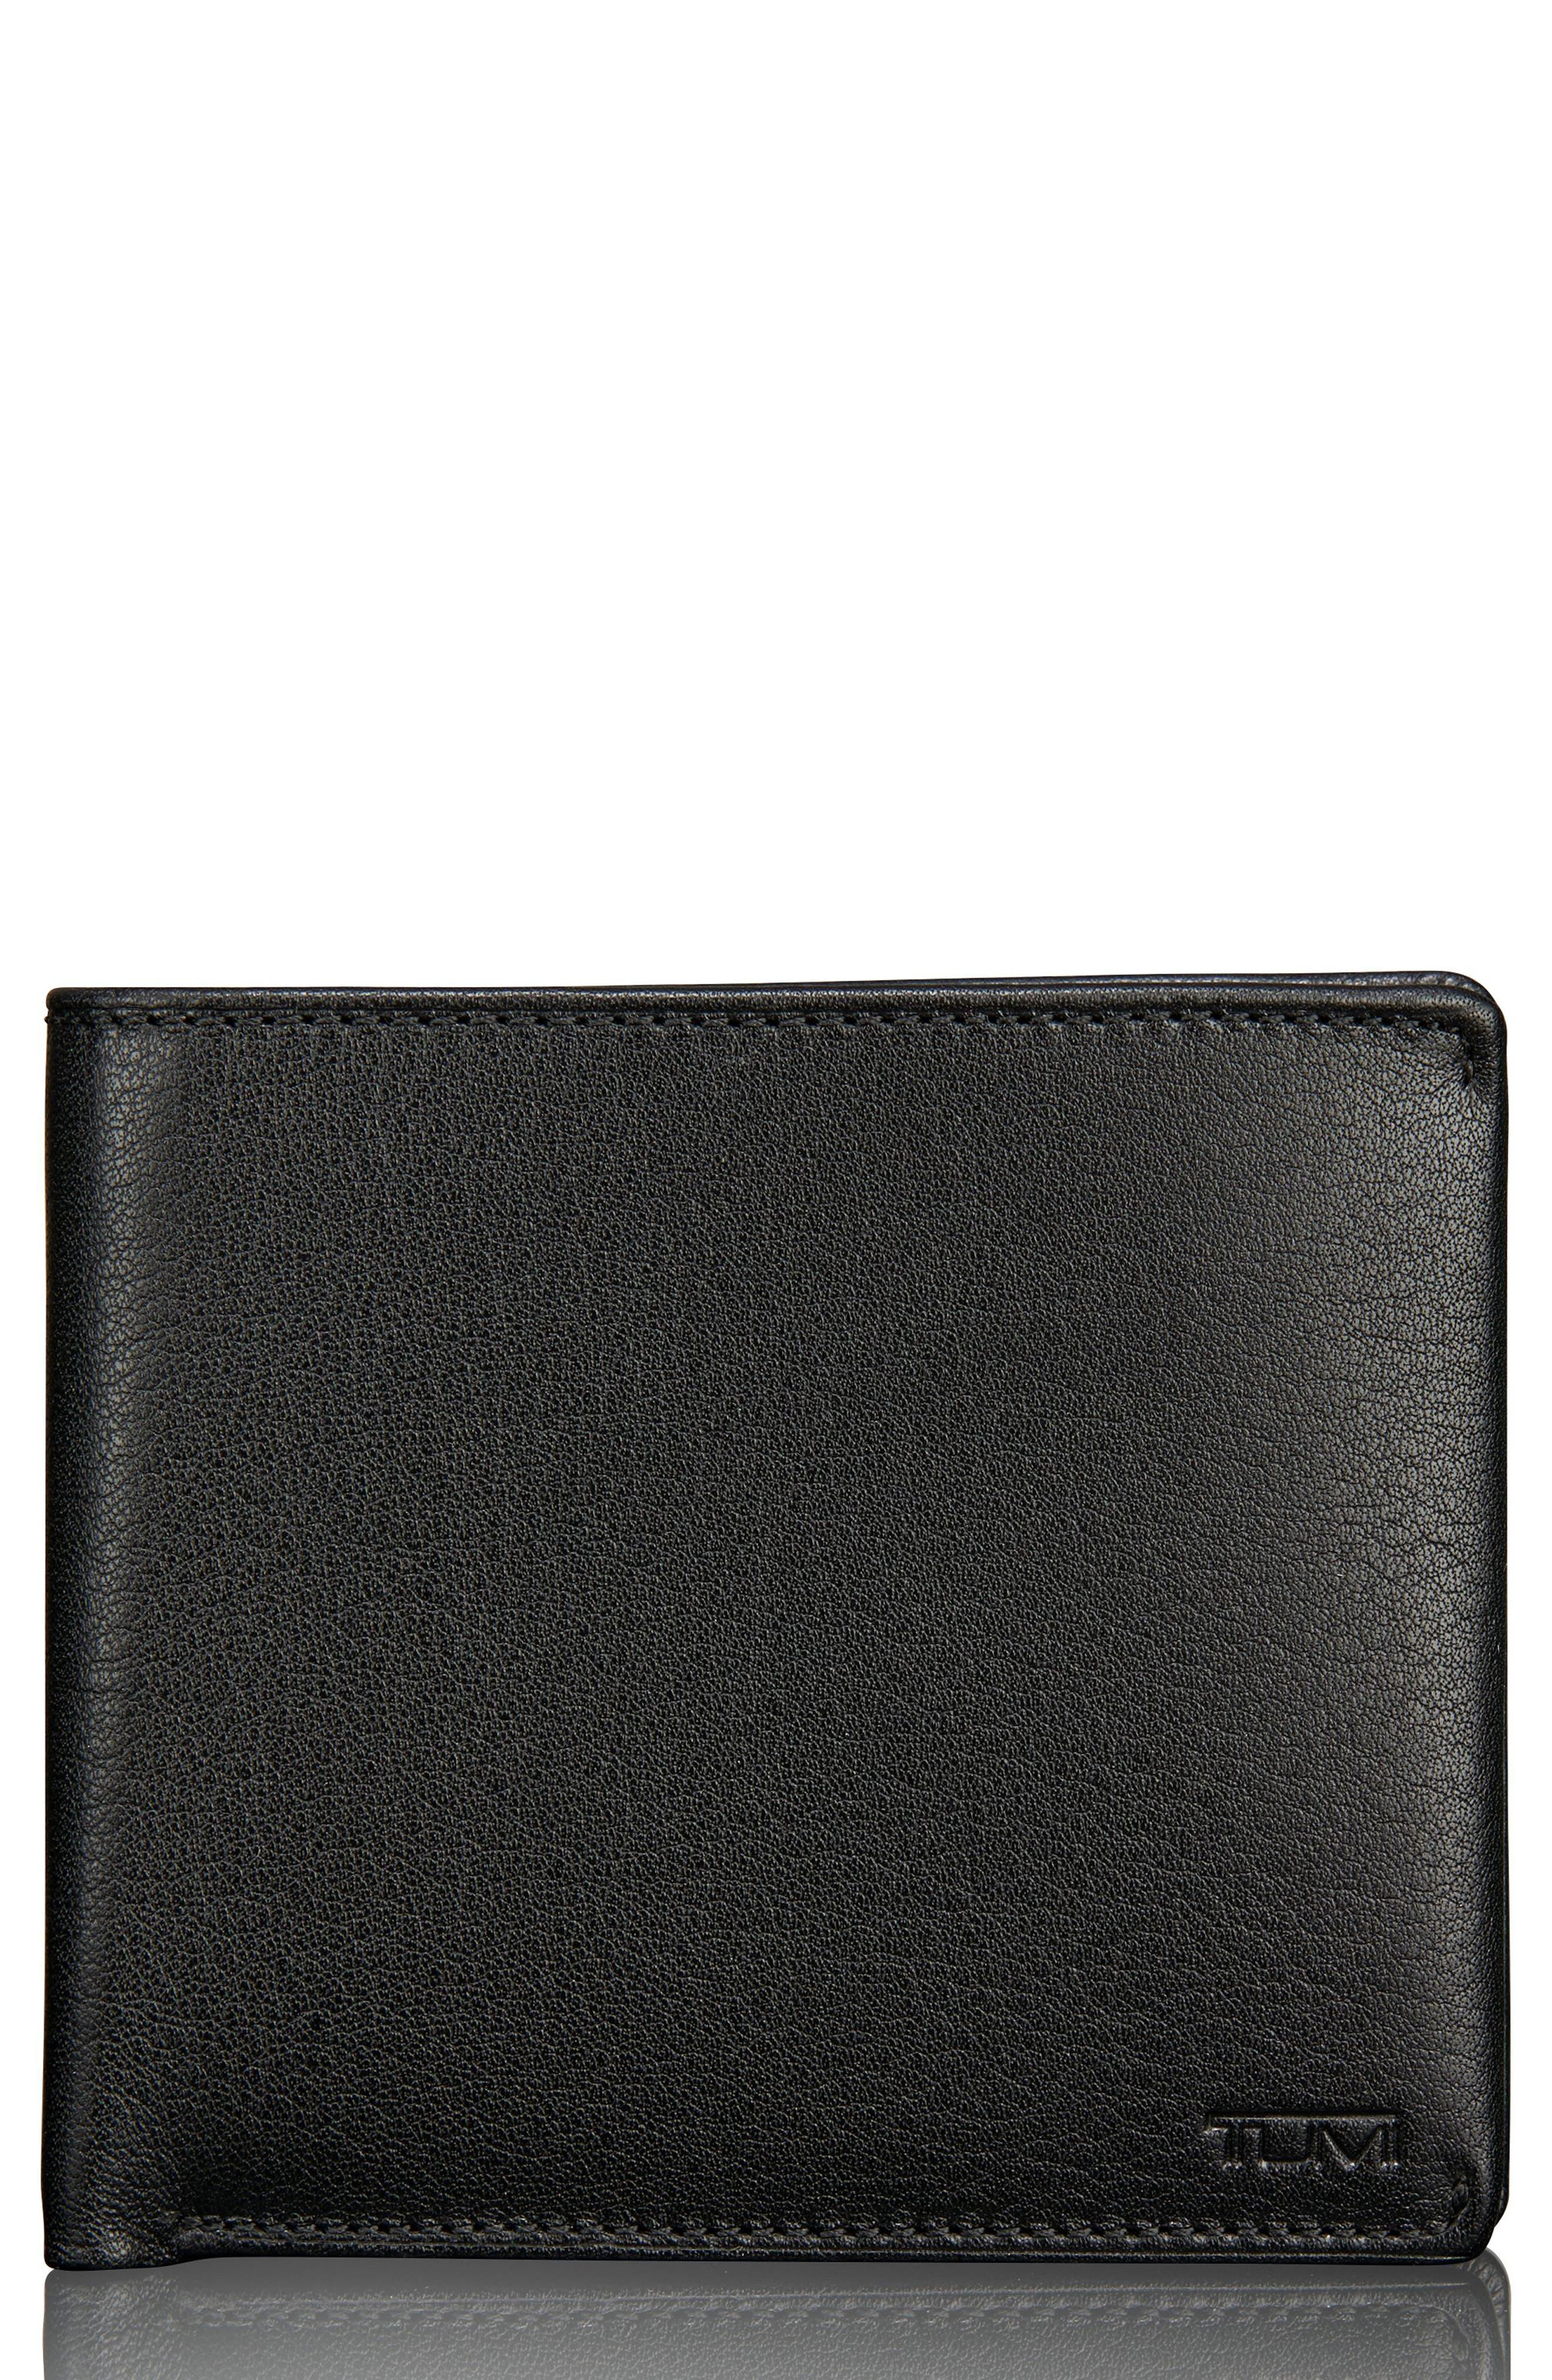 Main Image - Tumi Global Leather Passcase Wallet